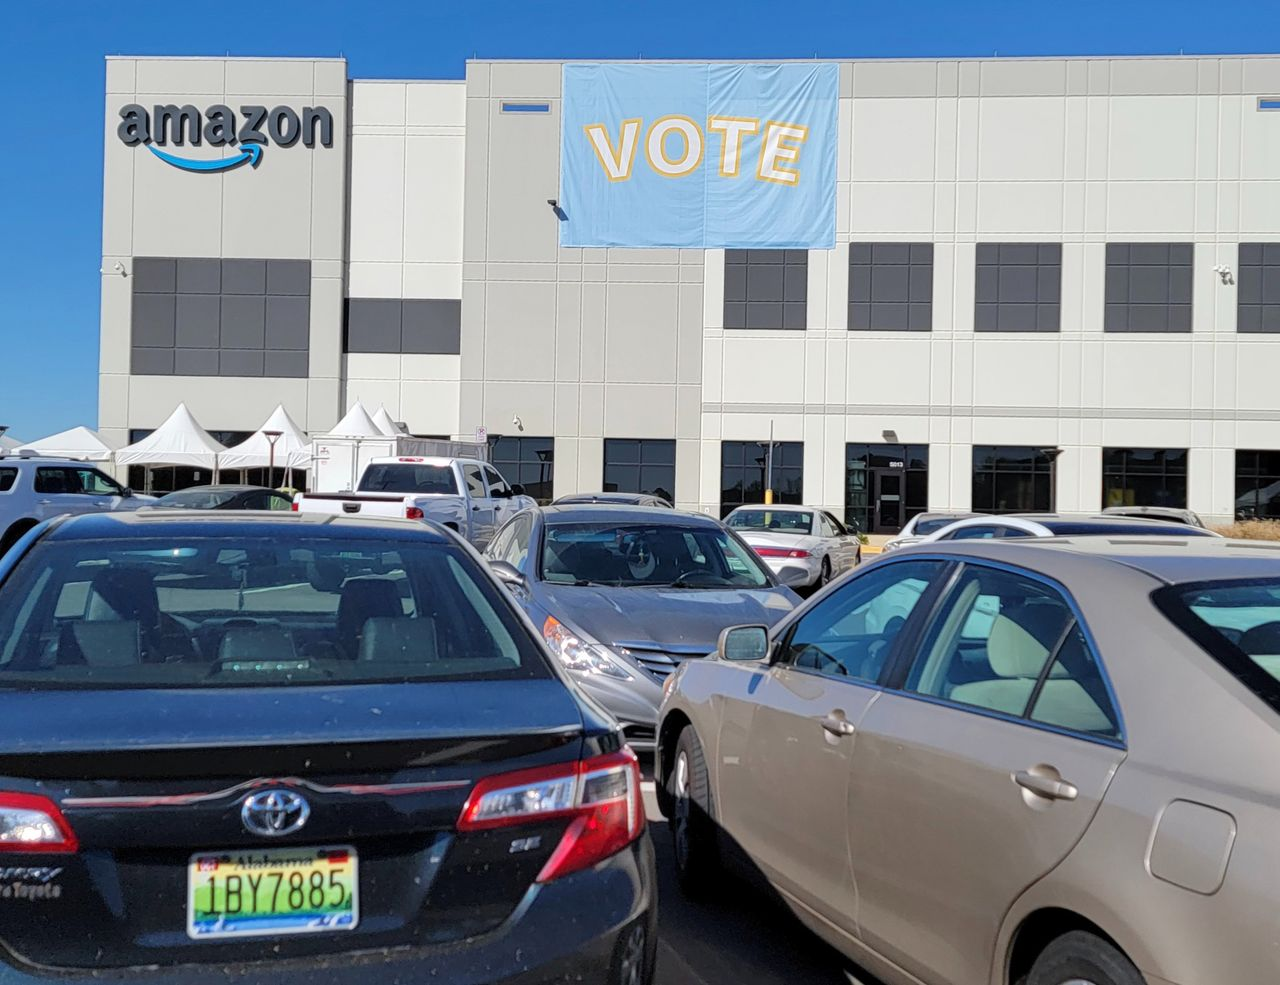 Amazon workers, residents speak out as union vote by Amazon workers concludes